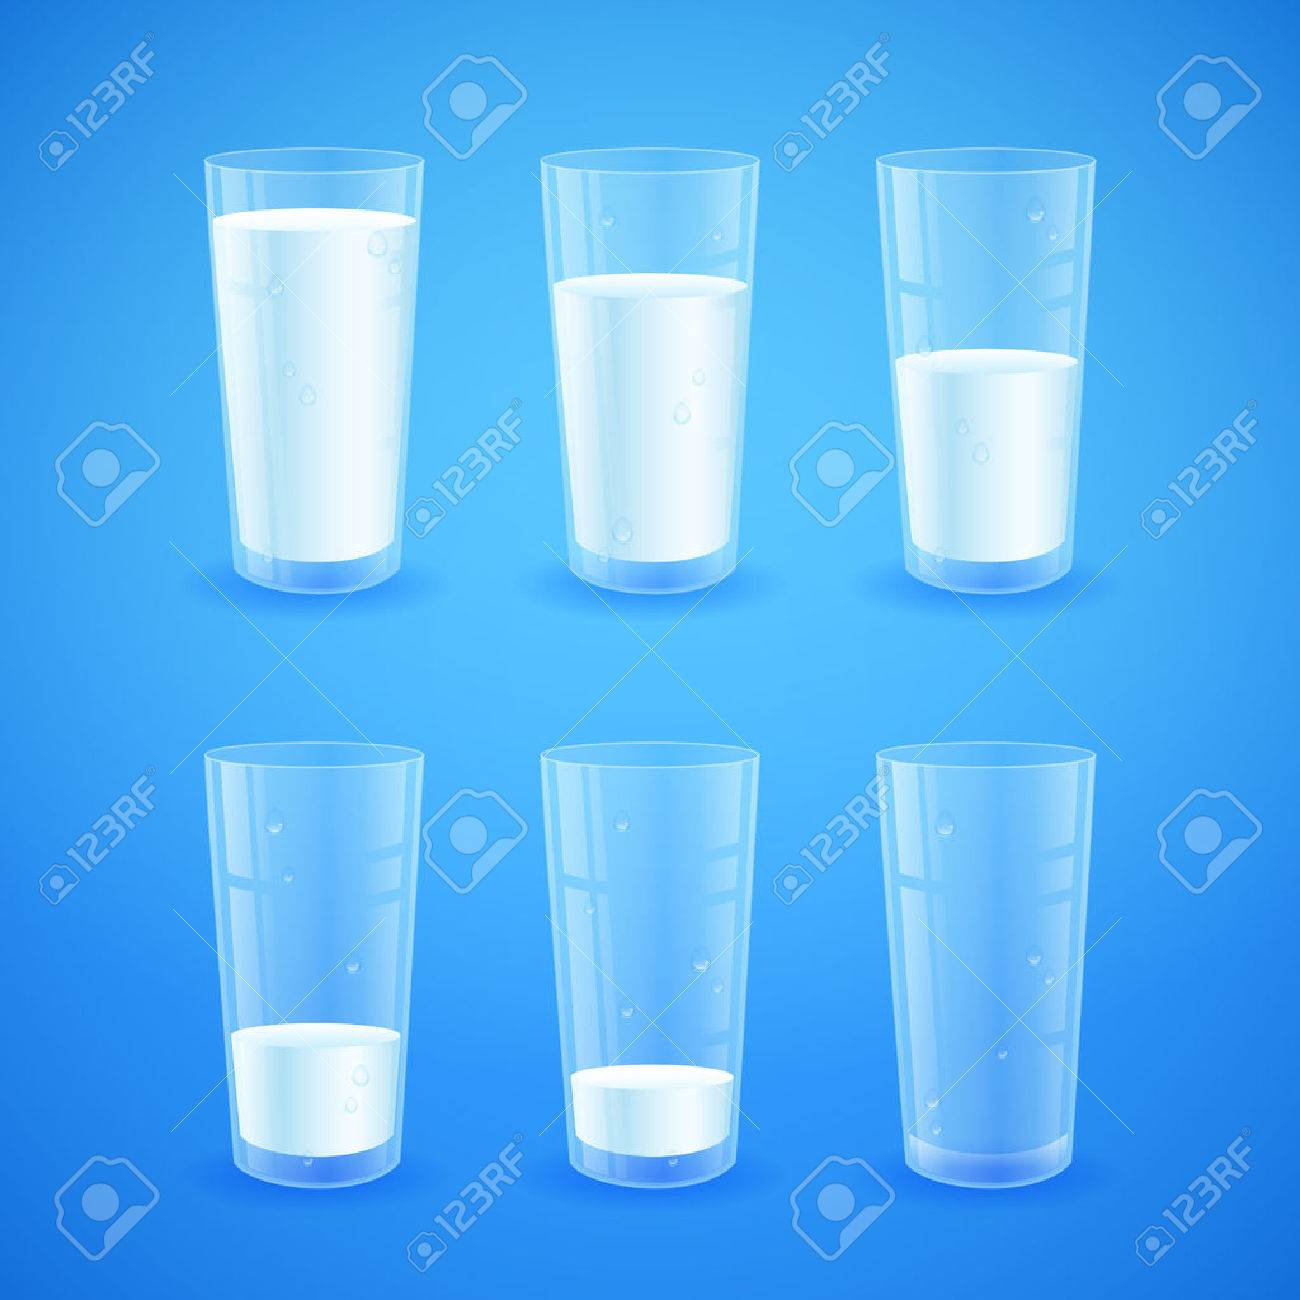 Transparent realistic glasses of milk on blue background, from full to half filled to empty, nutricios and organic, for breakfast - 44505879